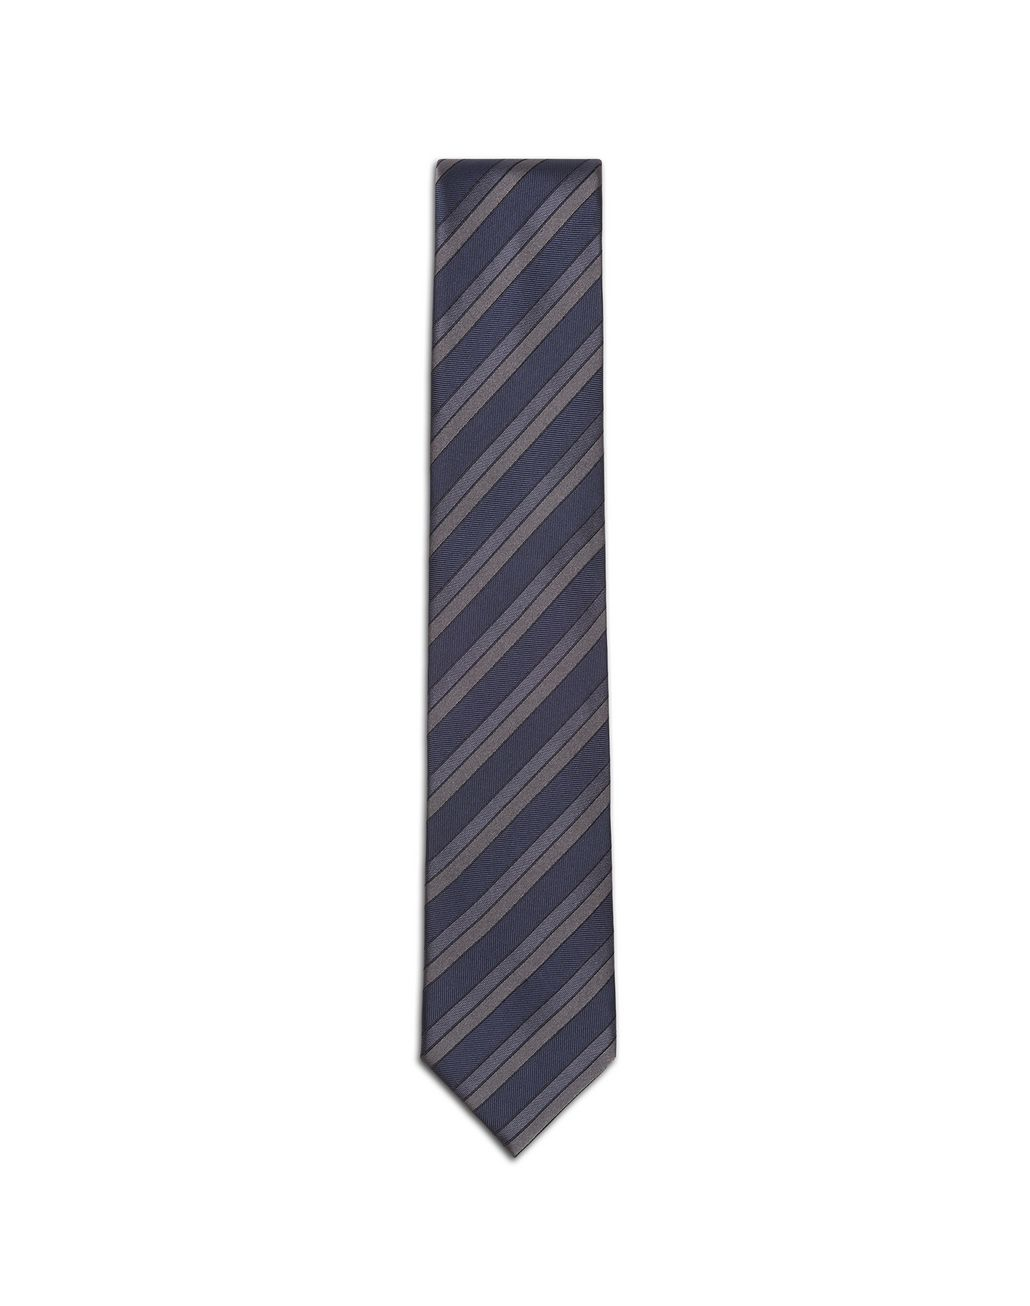 BRIONI Gray and Navy Blue Regimental Tie Tie & Pocket Square Man f